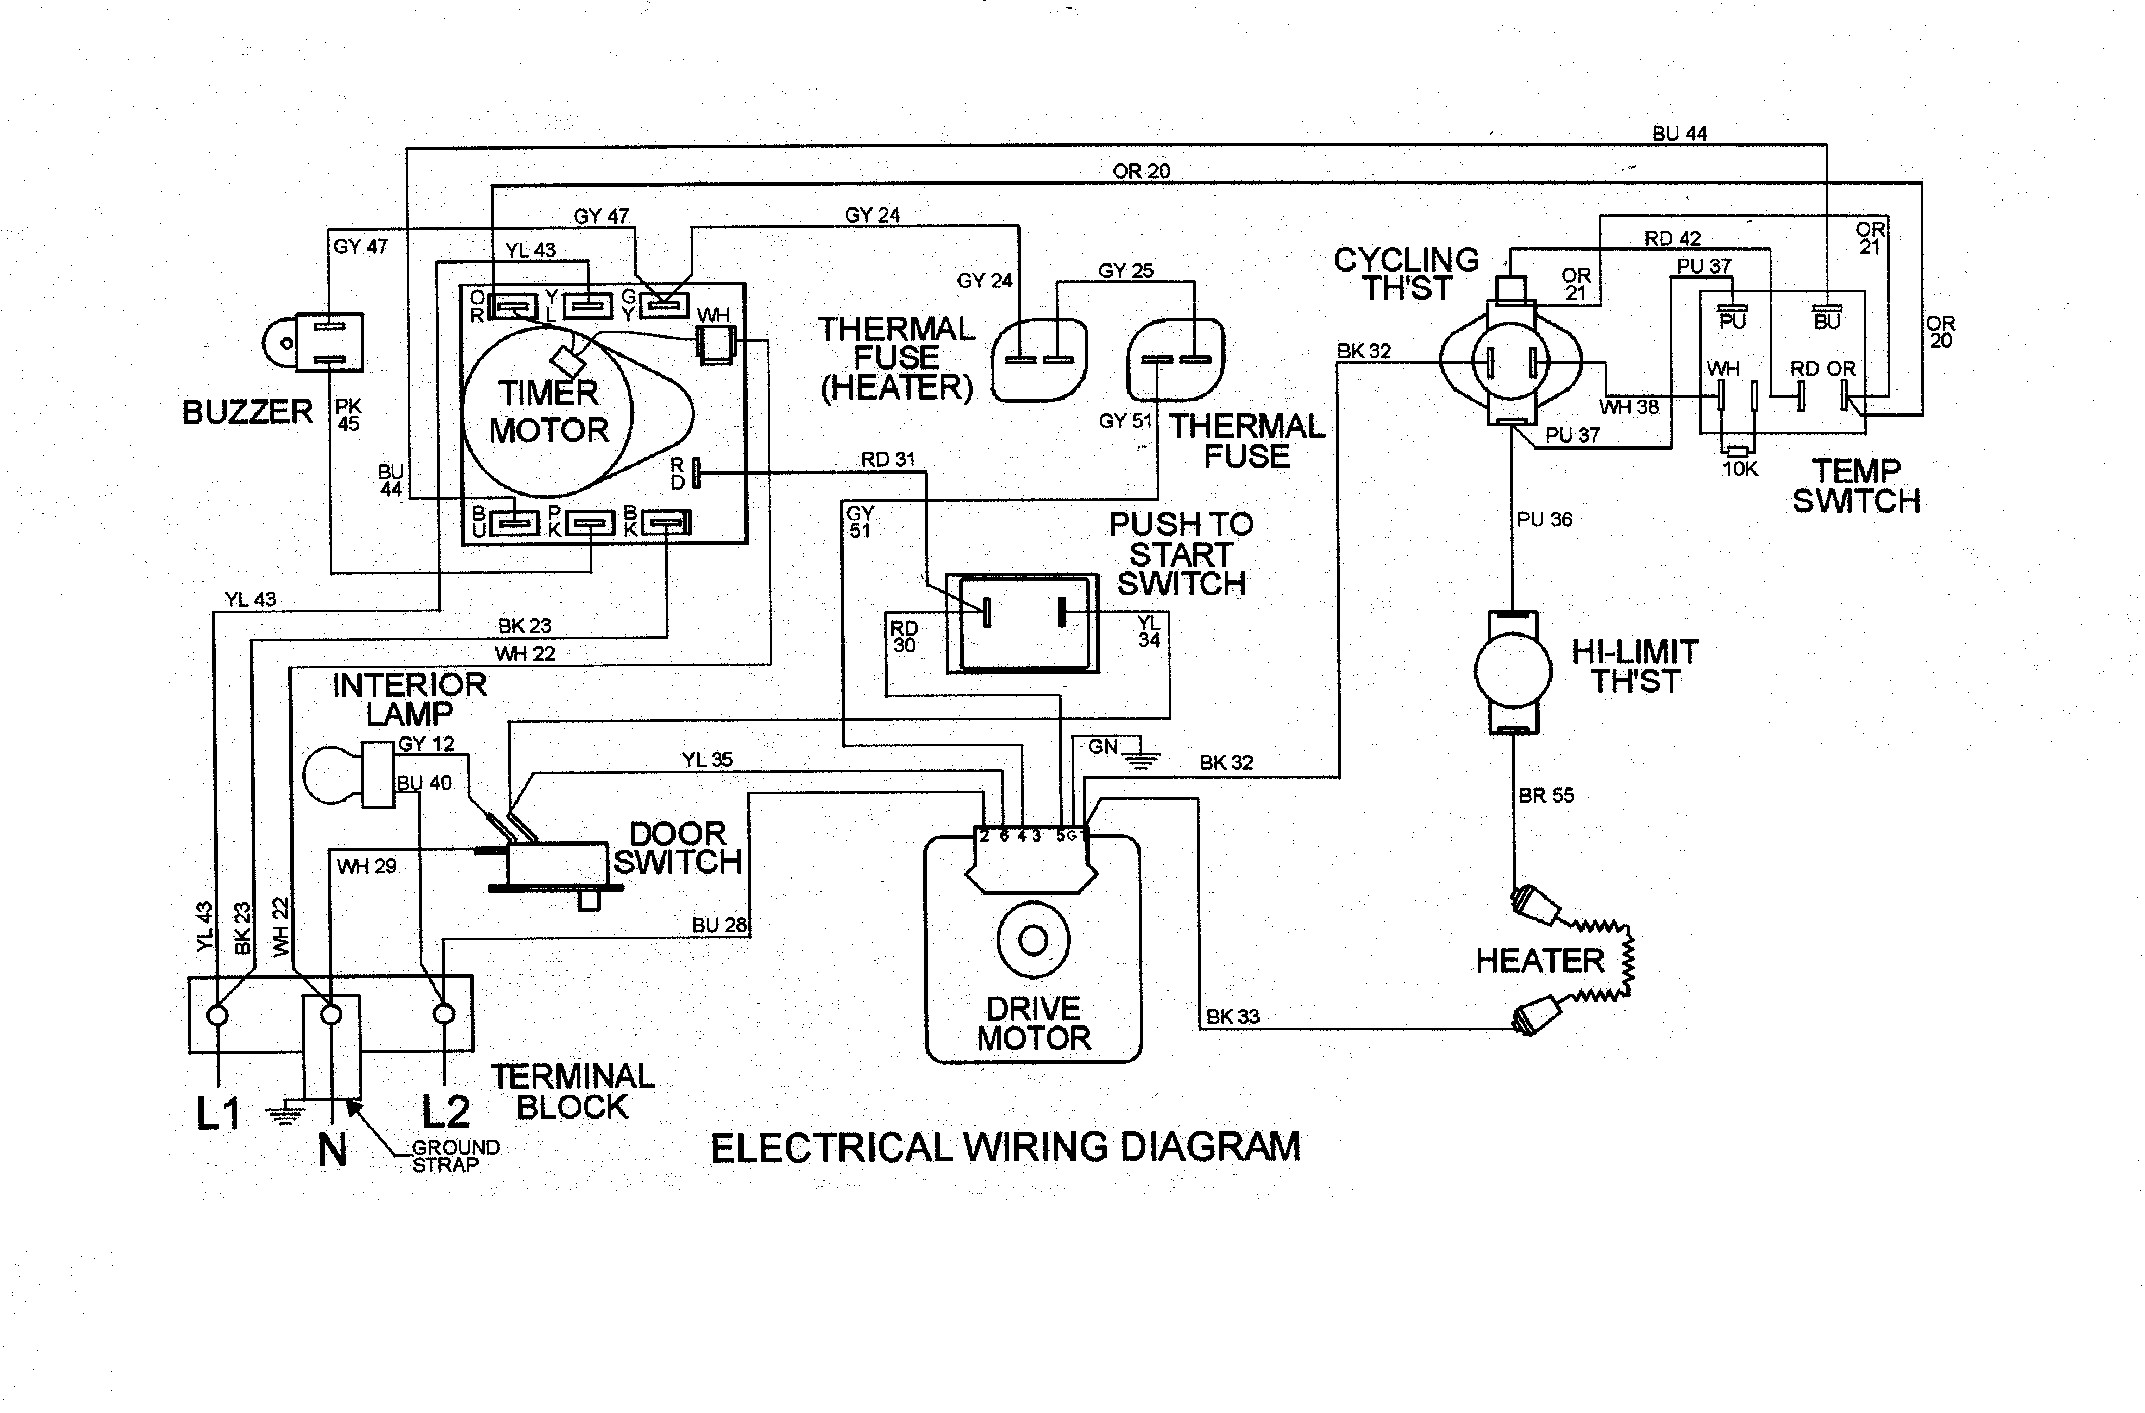 maytag neptune dryer wiring schematic can i disable the buzzer on my maytag dryer md-14 md6200? maytag atlantis dryer wiring diagram